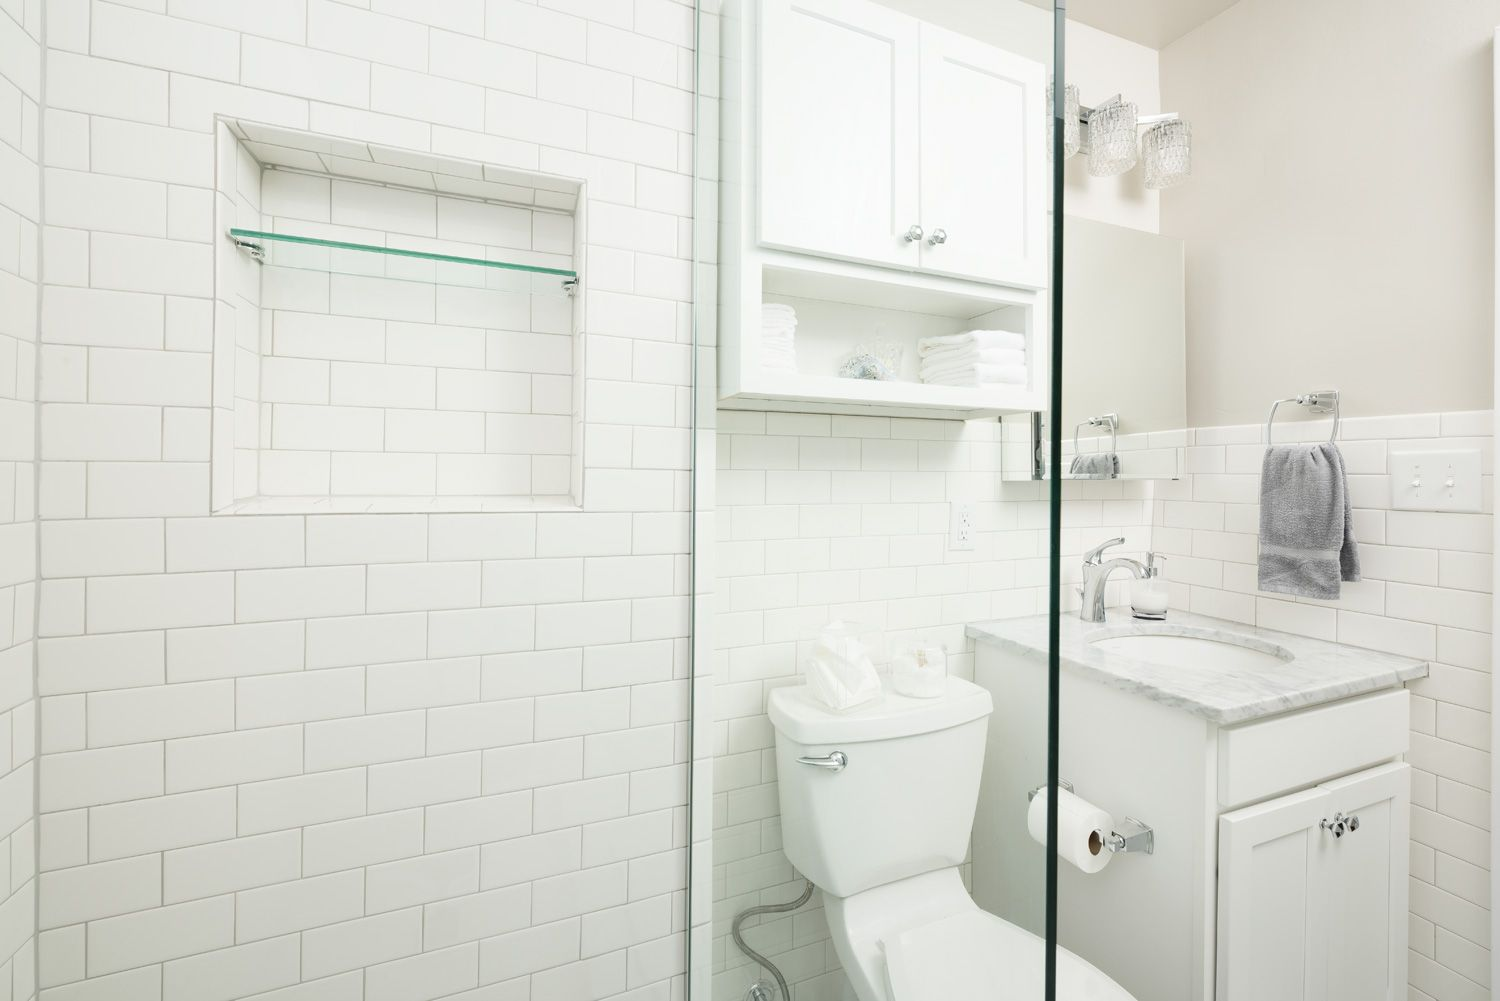 Broad Ripple Bungalow Bathroom: White and Chrome Finishes, Mirror ...